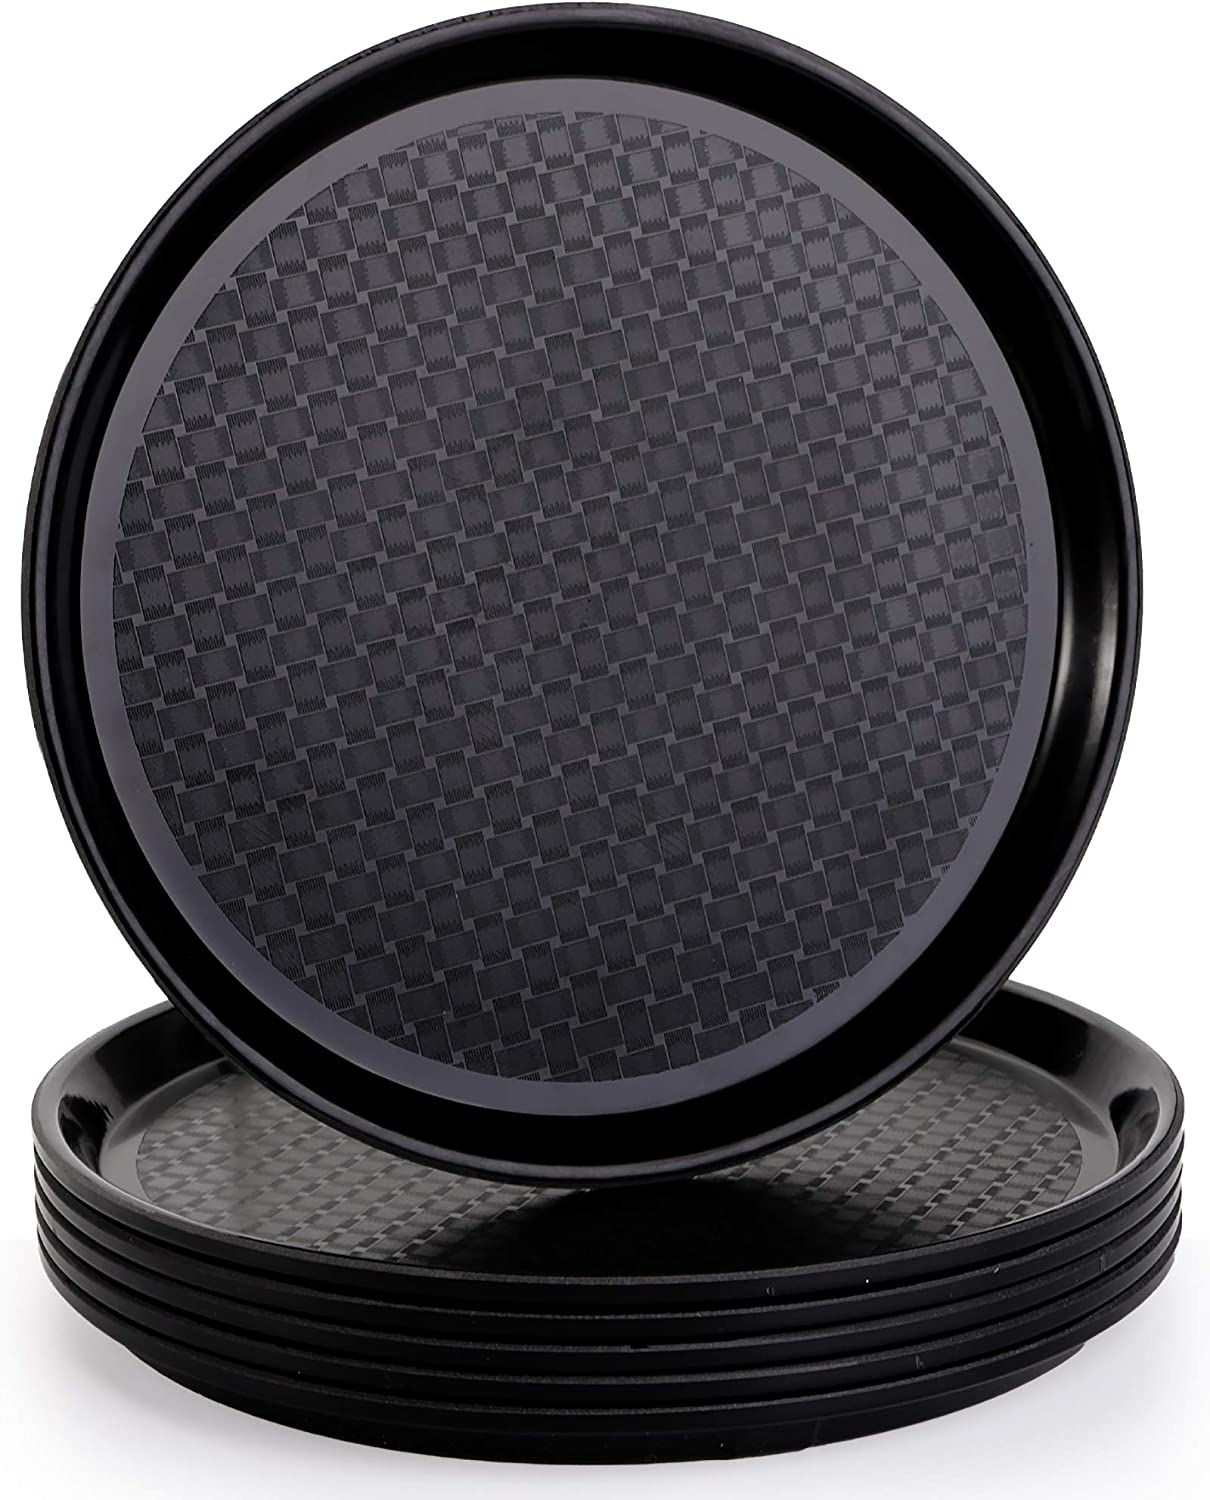 Yesland 6 Pack Non-Slip Tray, 11 Inch Round Serving Tray & Ottoman Tray, Plastic Coffee Table Circle Tray / Plate with Raised Edges for Breakfast, Drinks, Snack for Coffee Table, Dining Table(Black)